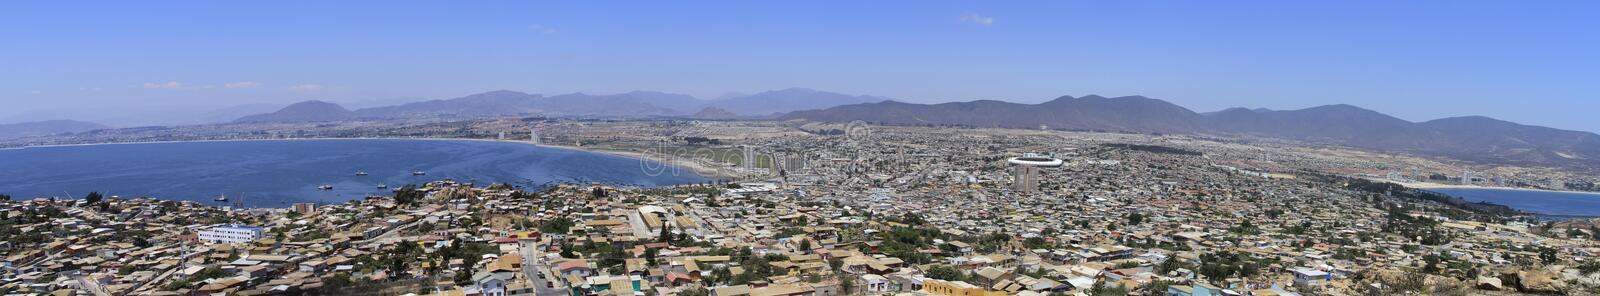 Coquimbo Chile stock images